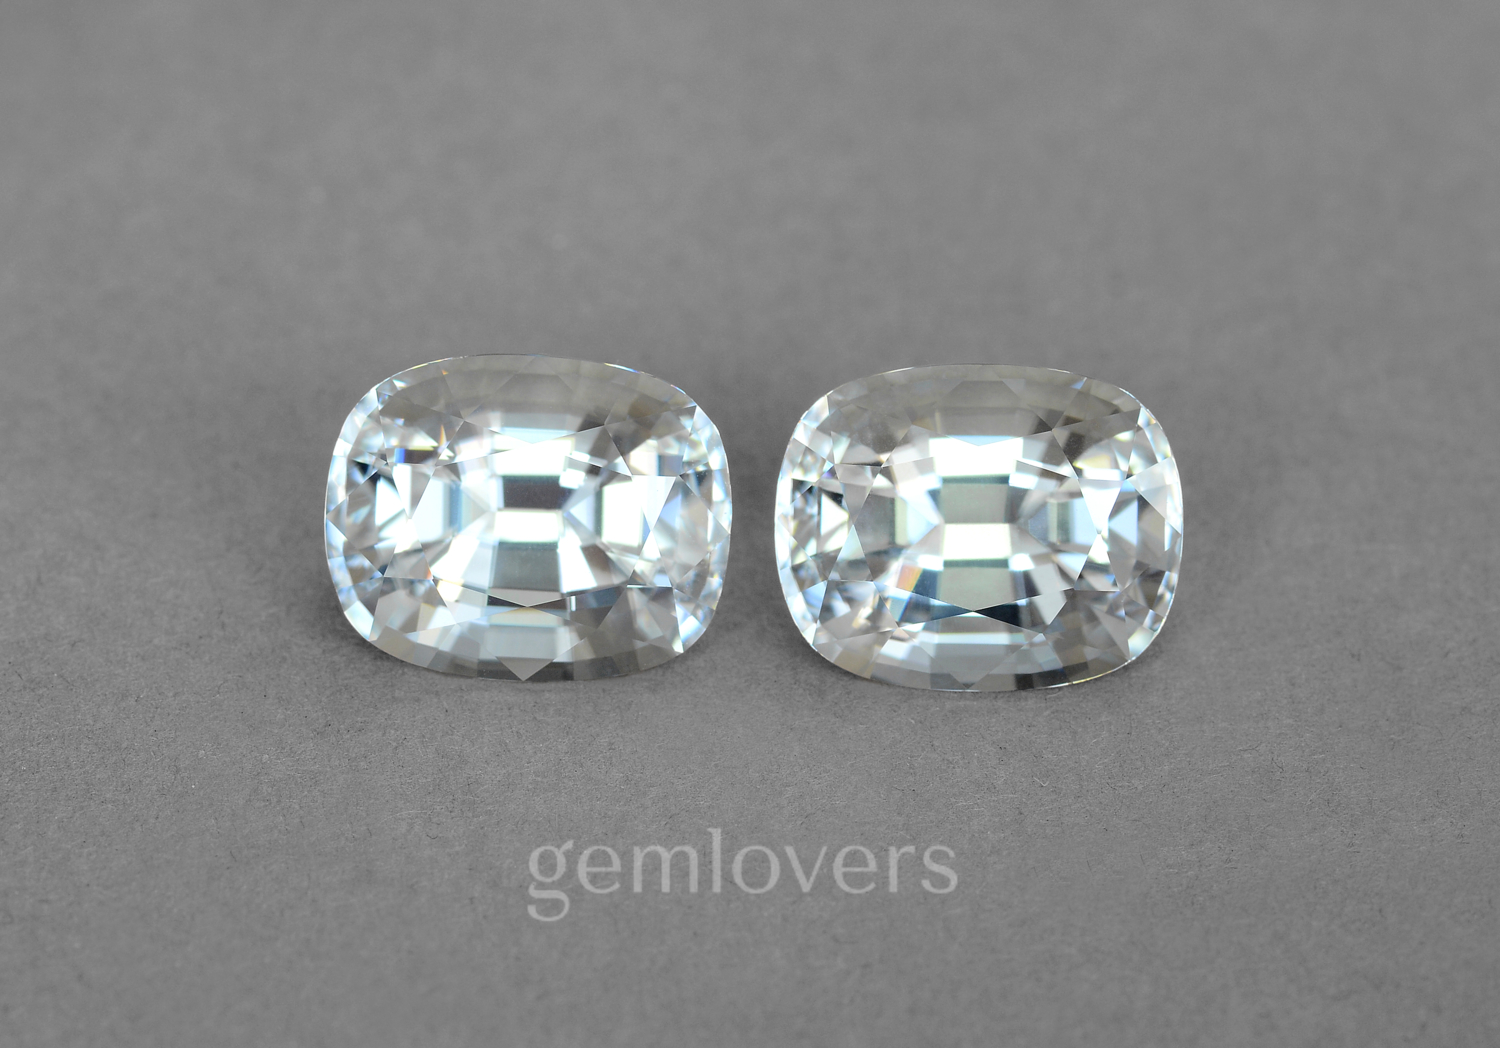 A pair of colorless natural zircons